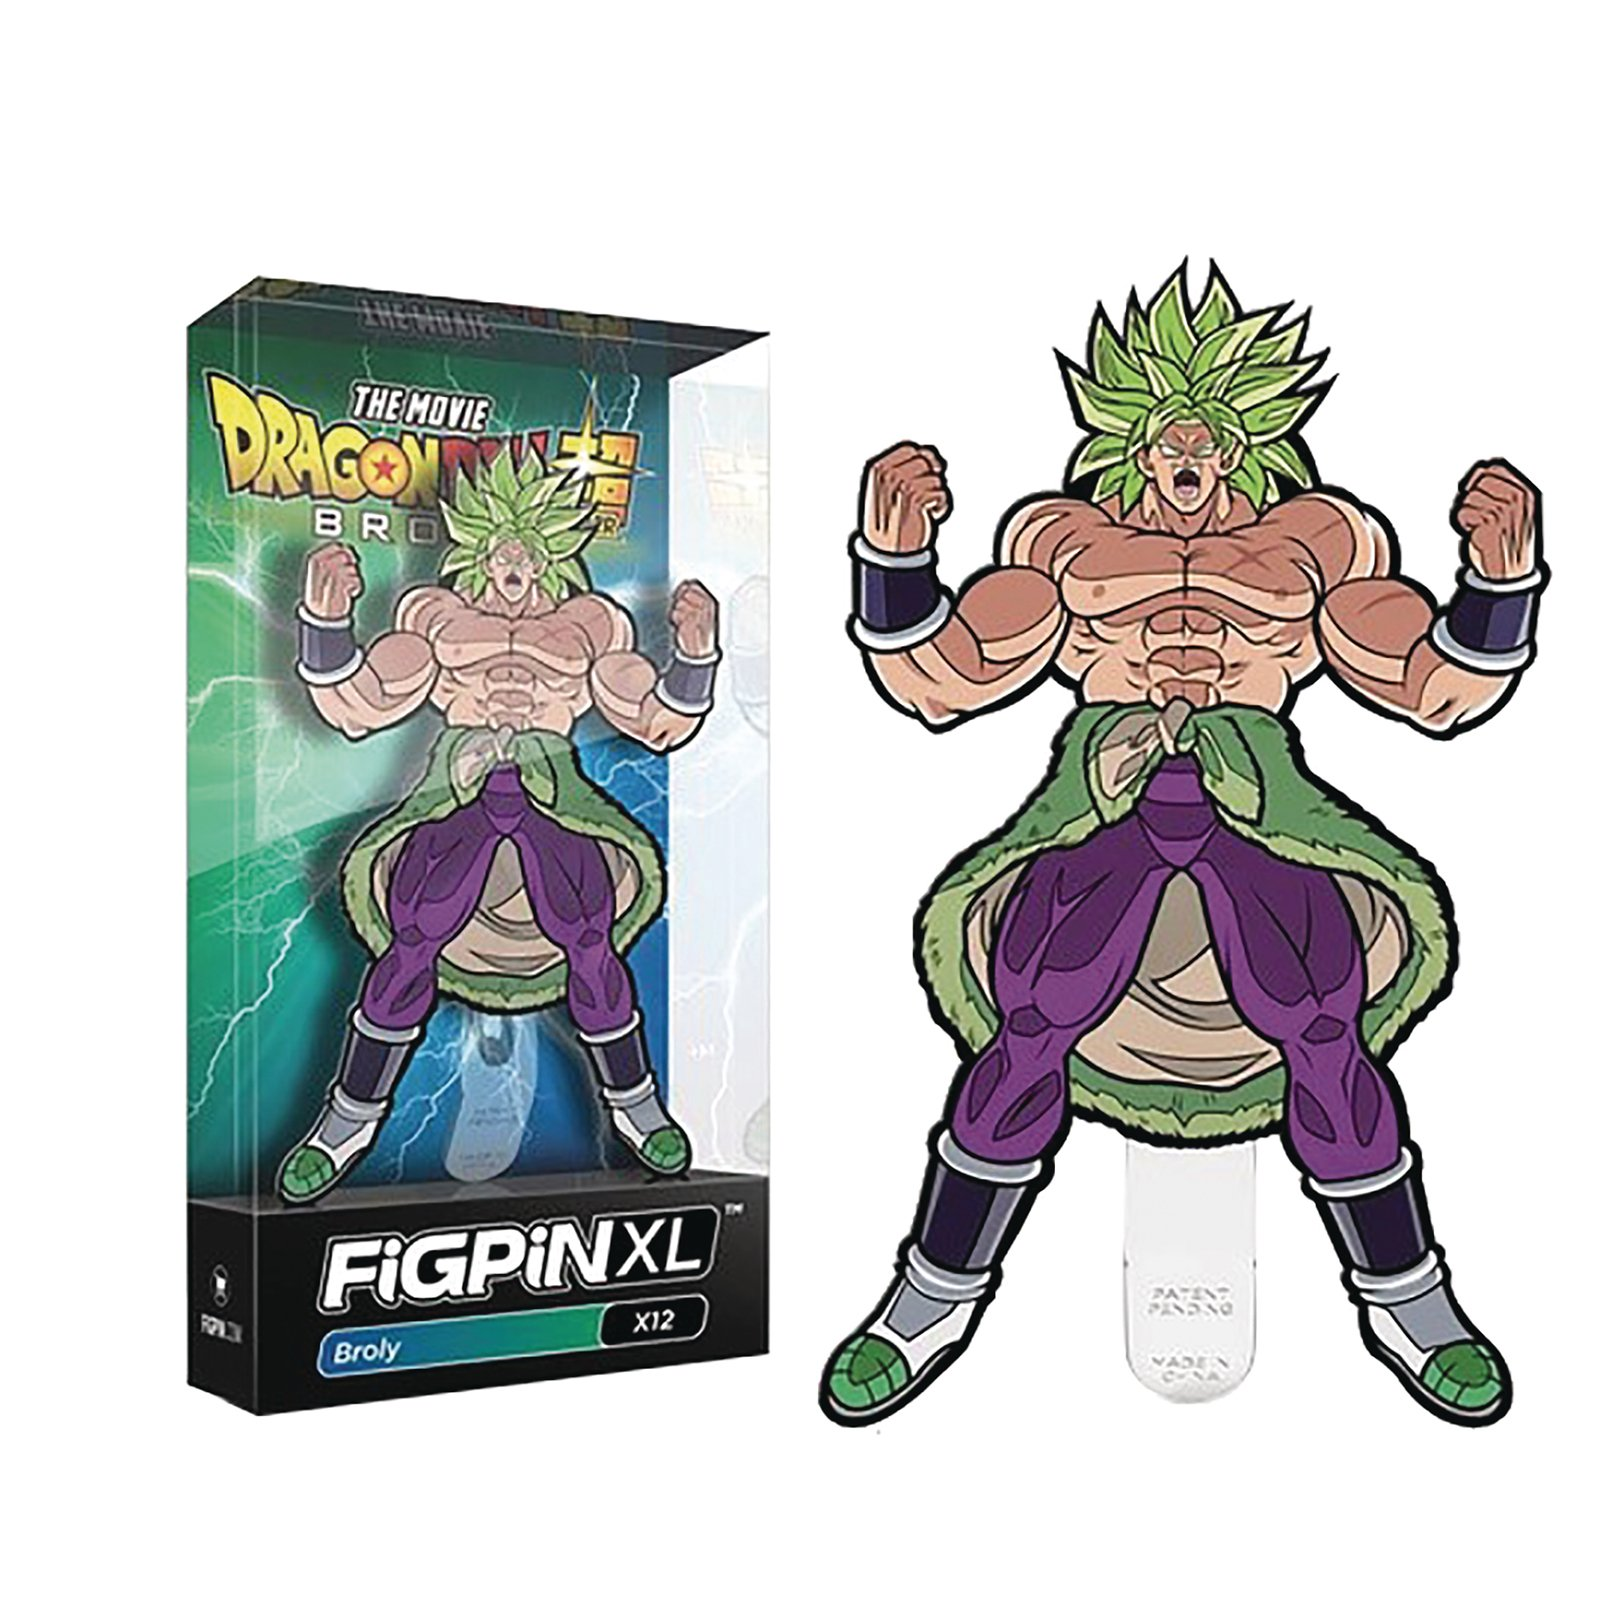 The Movie Dragon Ball Super Broly - Broly FiGPin XL #X12